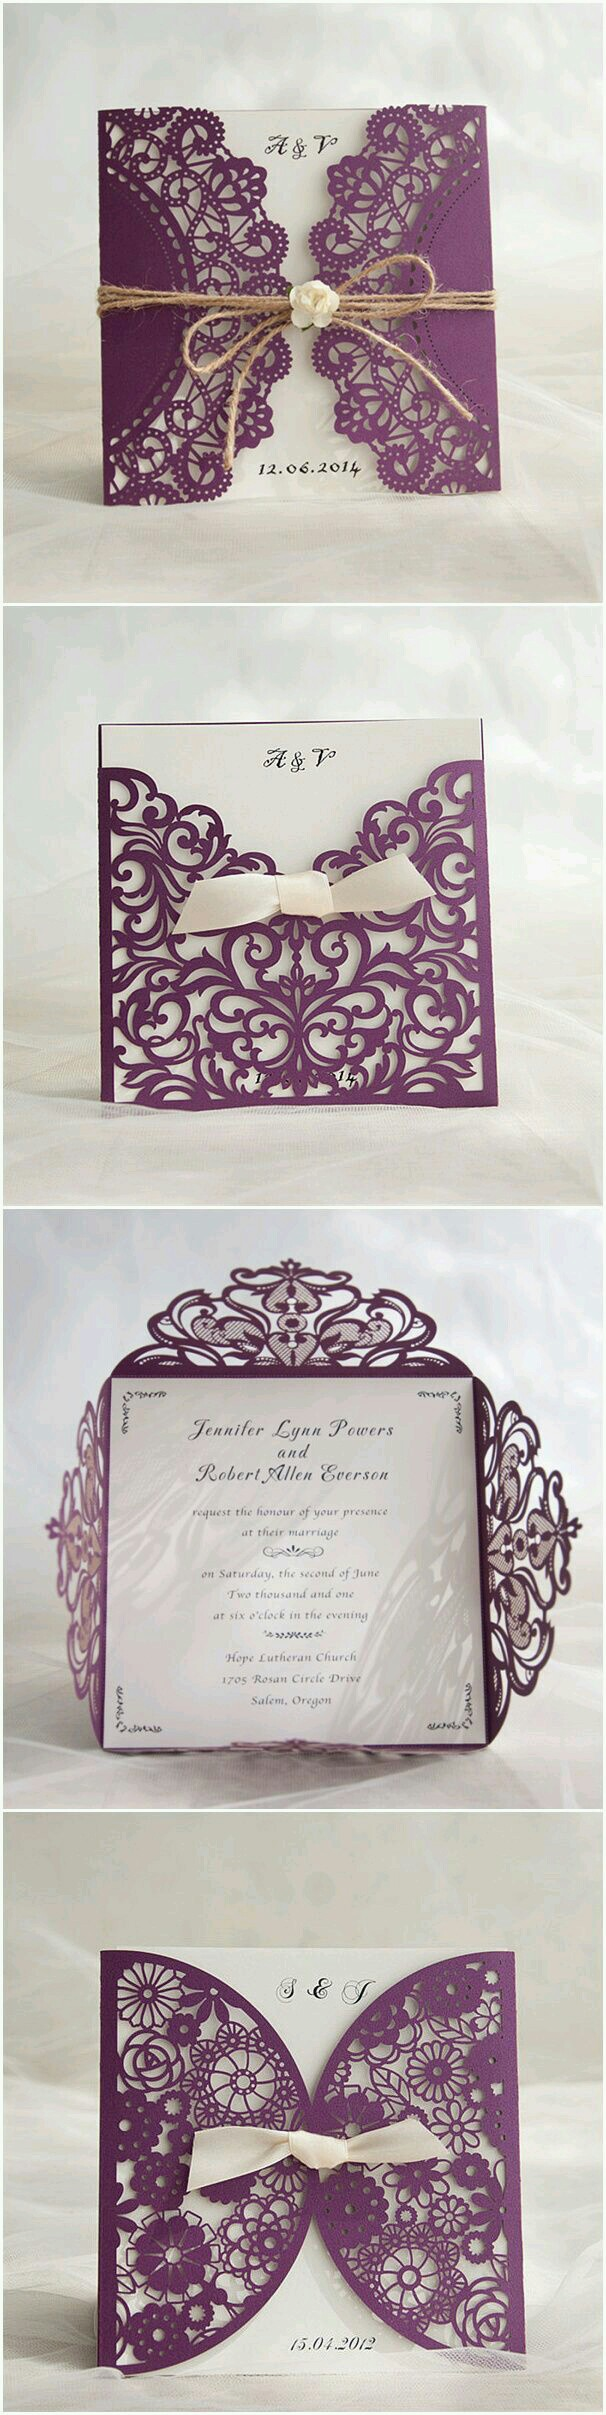 diy rustic wedding invitations burlap%0A rustic purple laser cut invitation with twine and flower EWWS      Laser  cut wedding invitations  Country weddings and Laser cutting